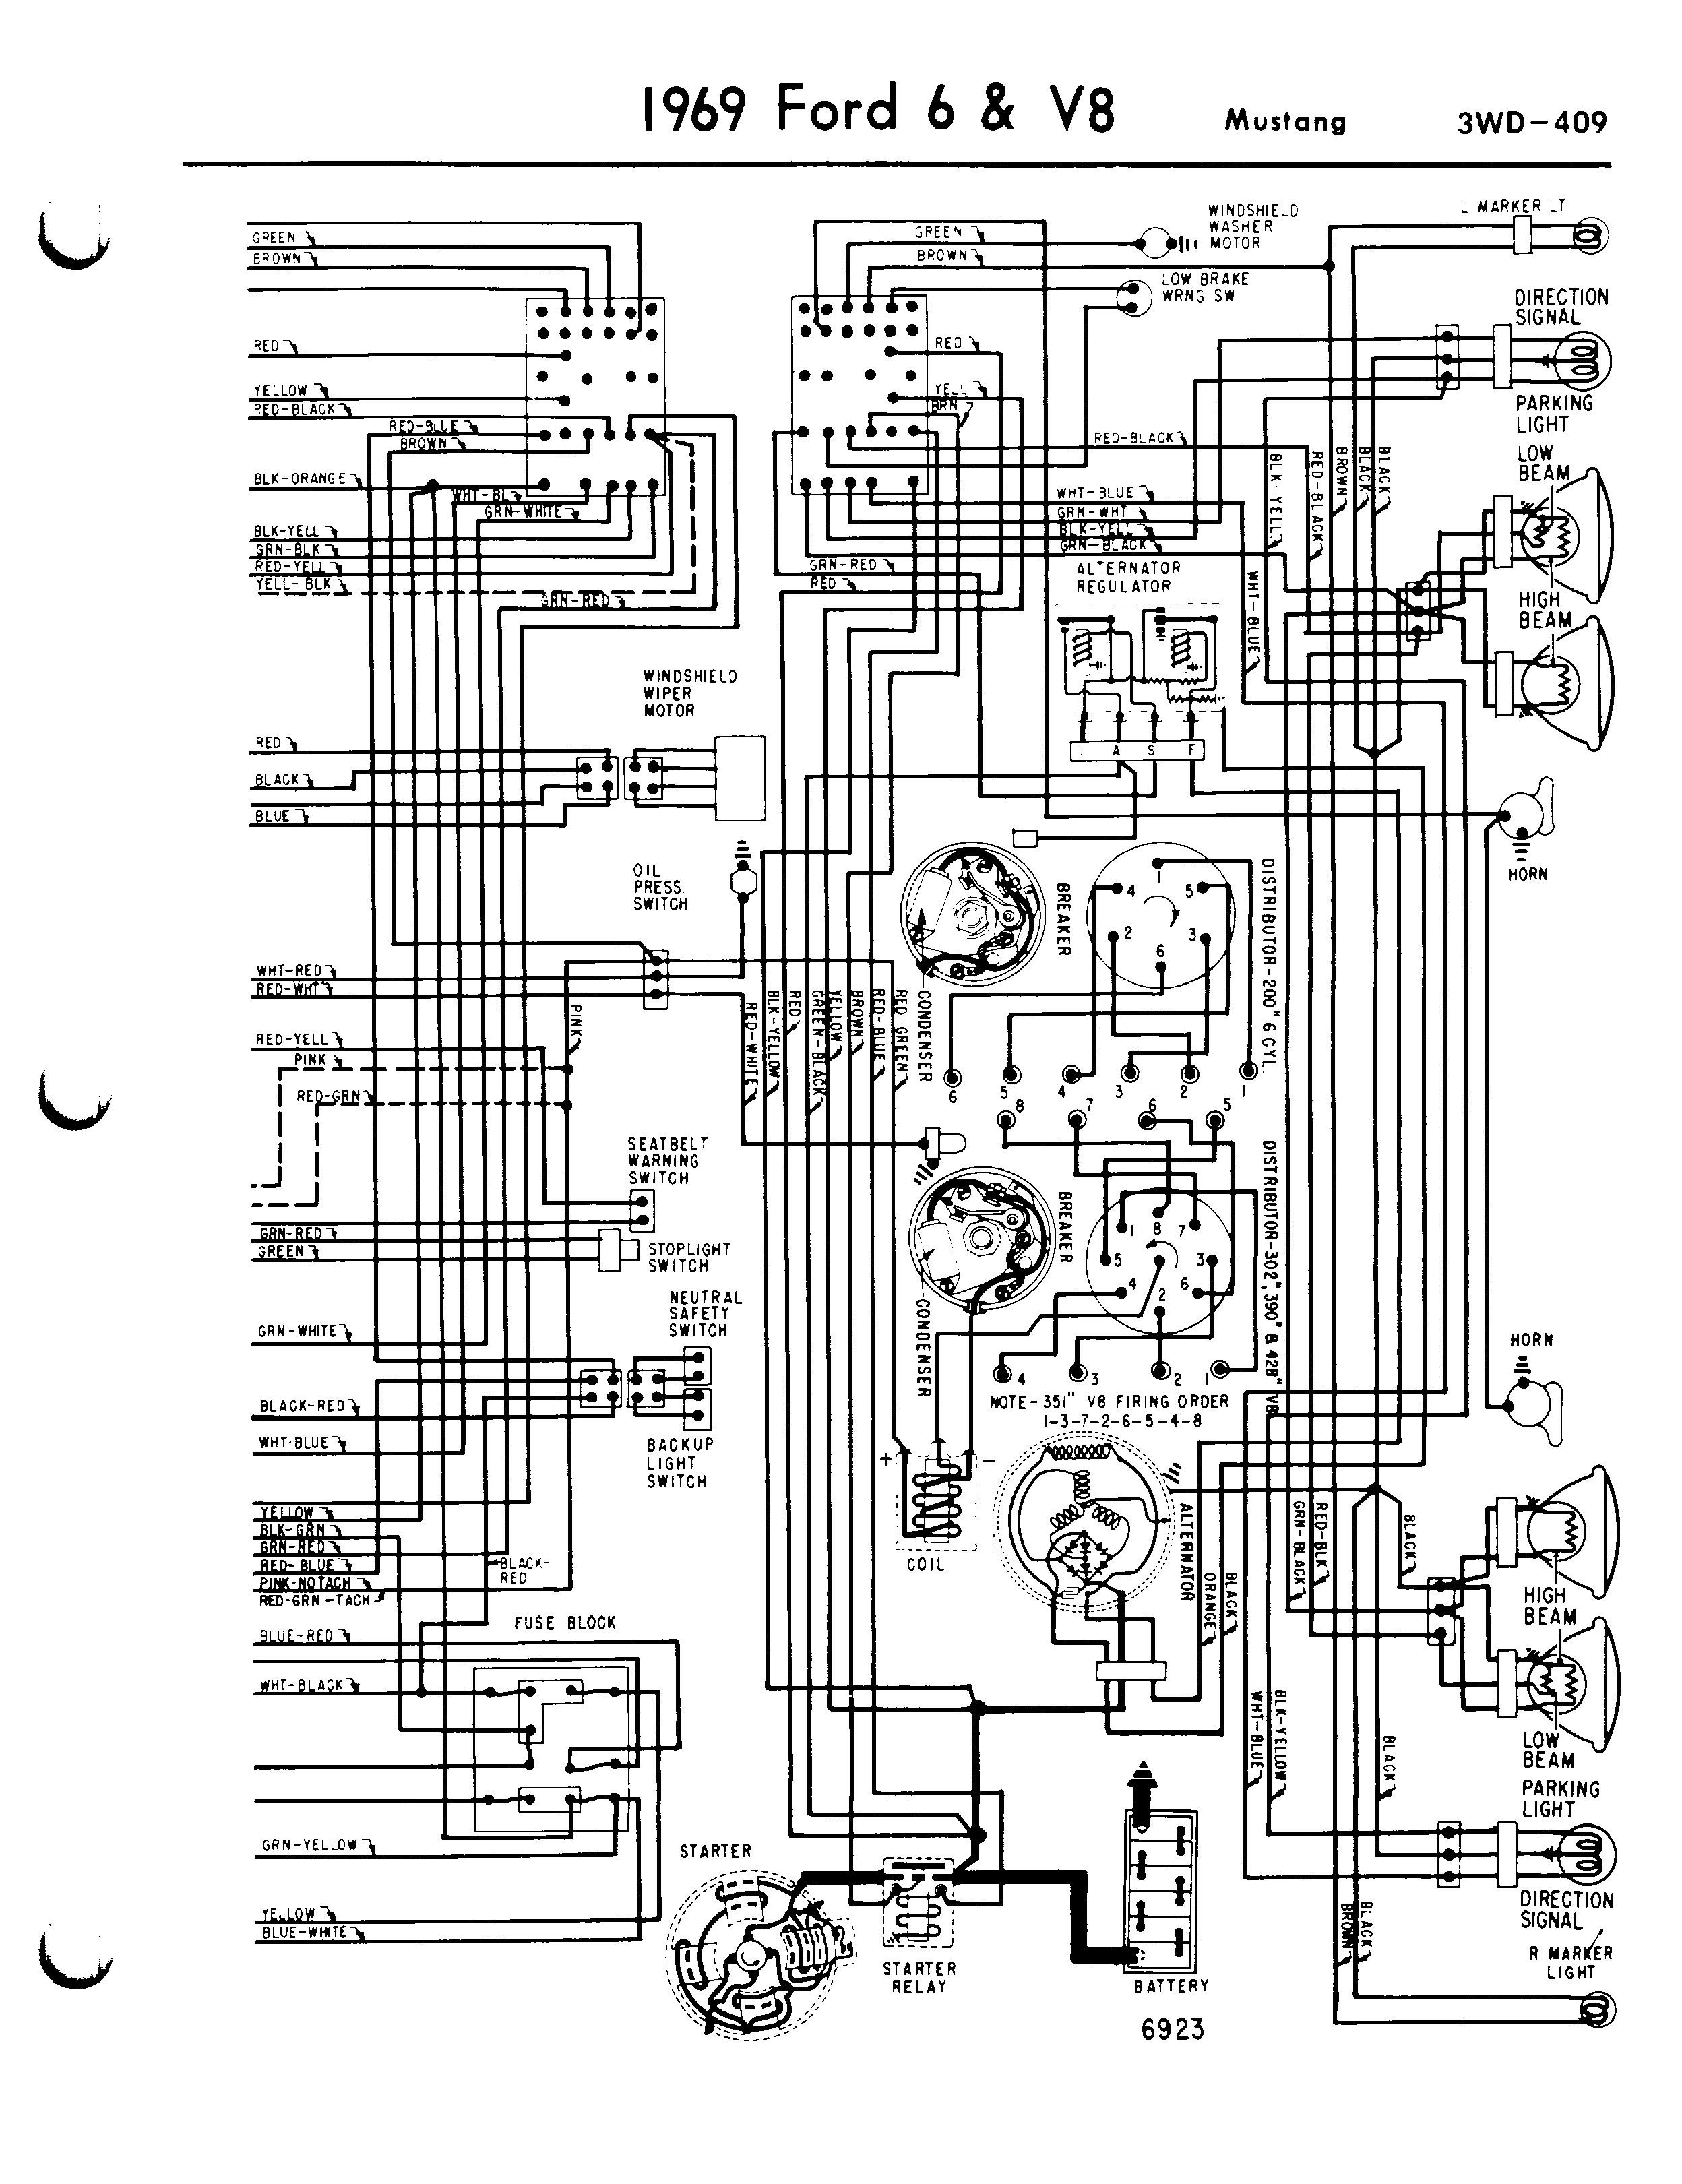 2007 ford Mustang Wiring Diagram Wiring Diagram 1966 ford Mustang 6 V8 3wd 235 Schematic for Alluring Of 2007 ford Mustang Wiring Diagram